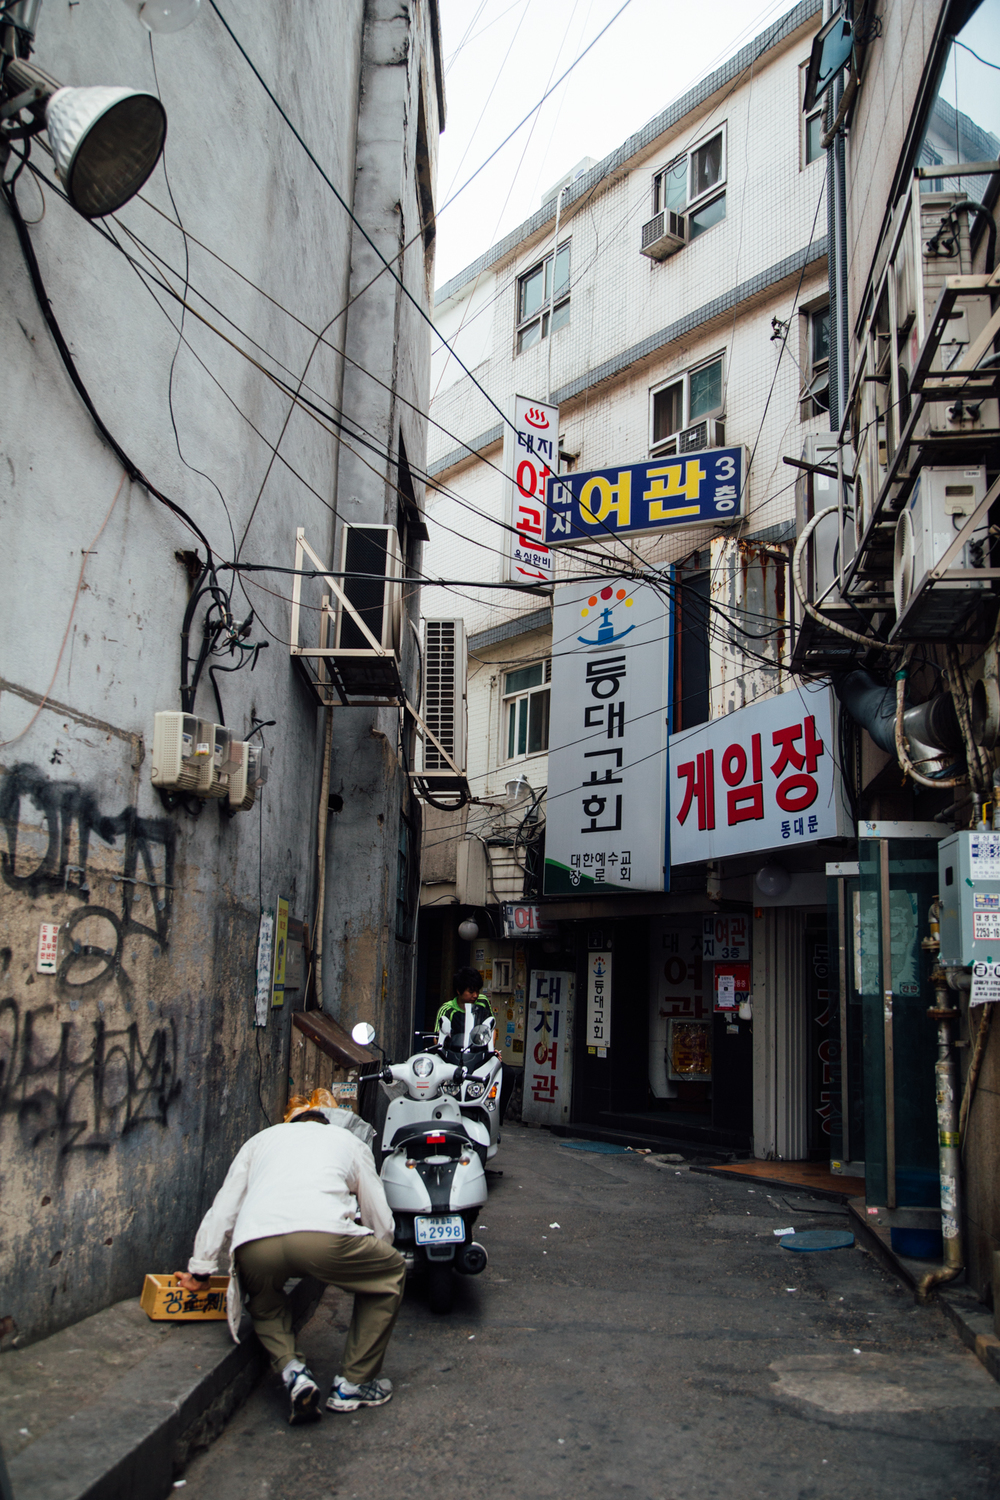 Next I headed to the Dongdaemun area for Heunginjimun Gate (동대문 - 흥인지문) unfortunately it was closed so I decided to do a little shopping around the area. There was such a big change in atmosphere going from Bukchon's peaceful (and clean) neighborhoods to the bustling streets around Dongdaemun.